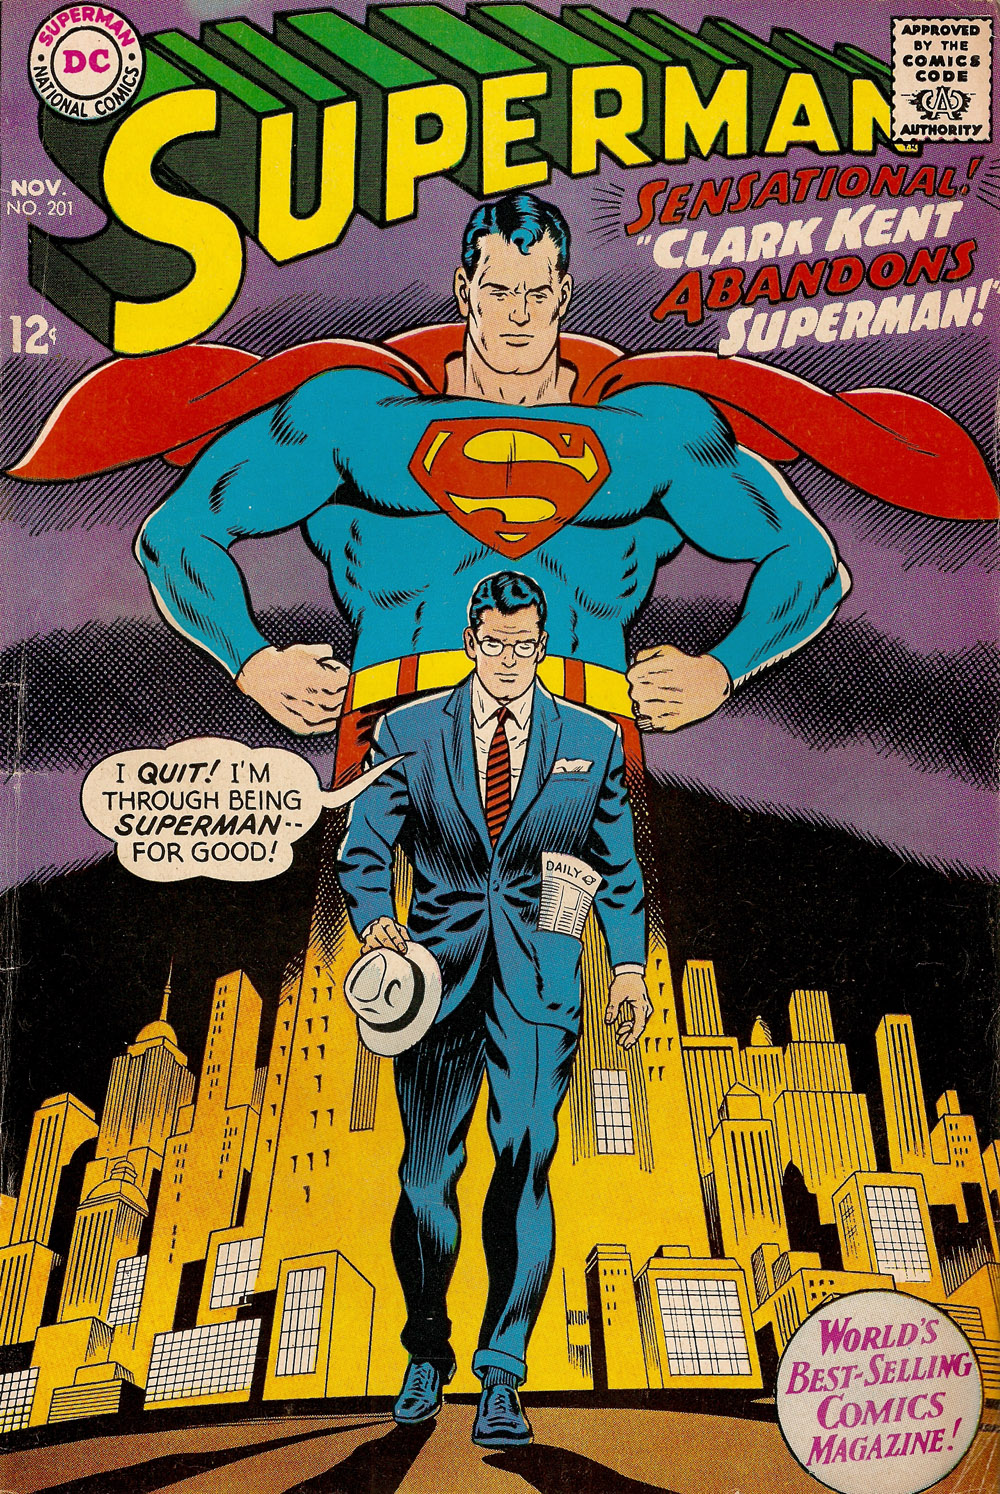 Vintage Comic Book Cover : Retrospace classic superman comic covers